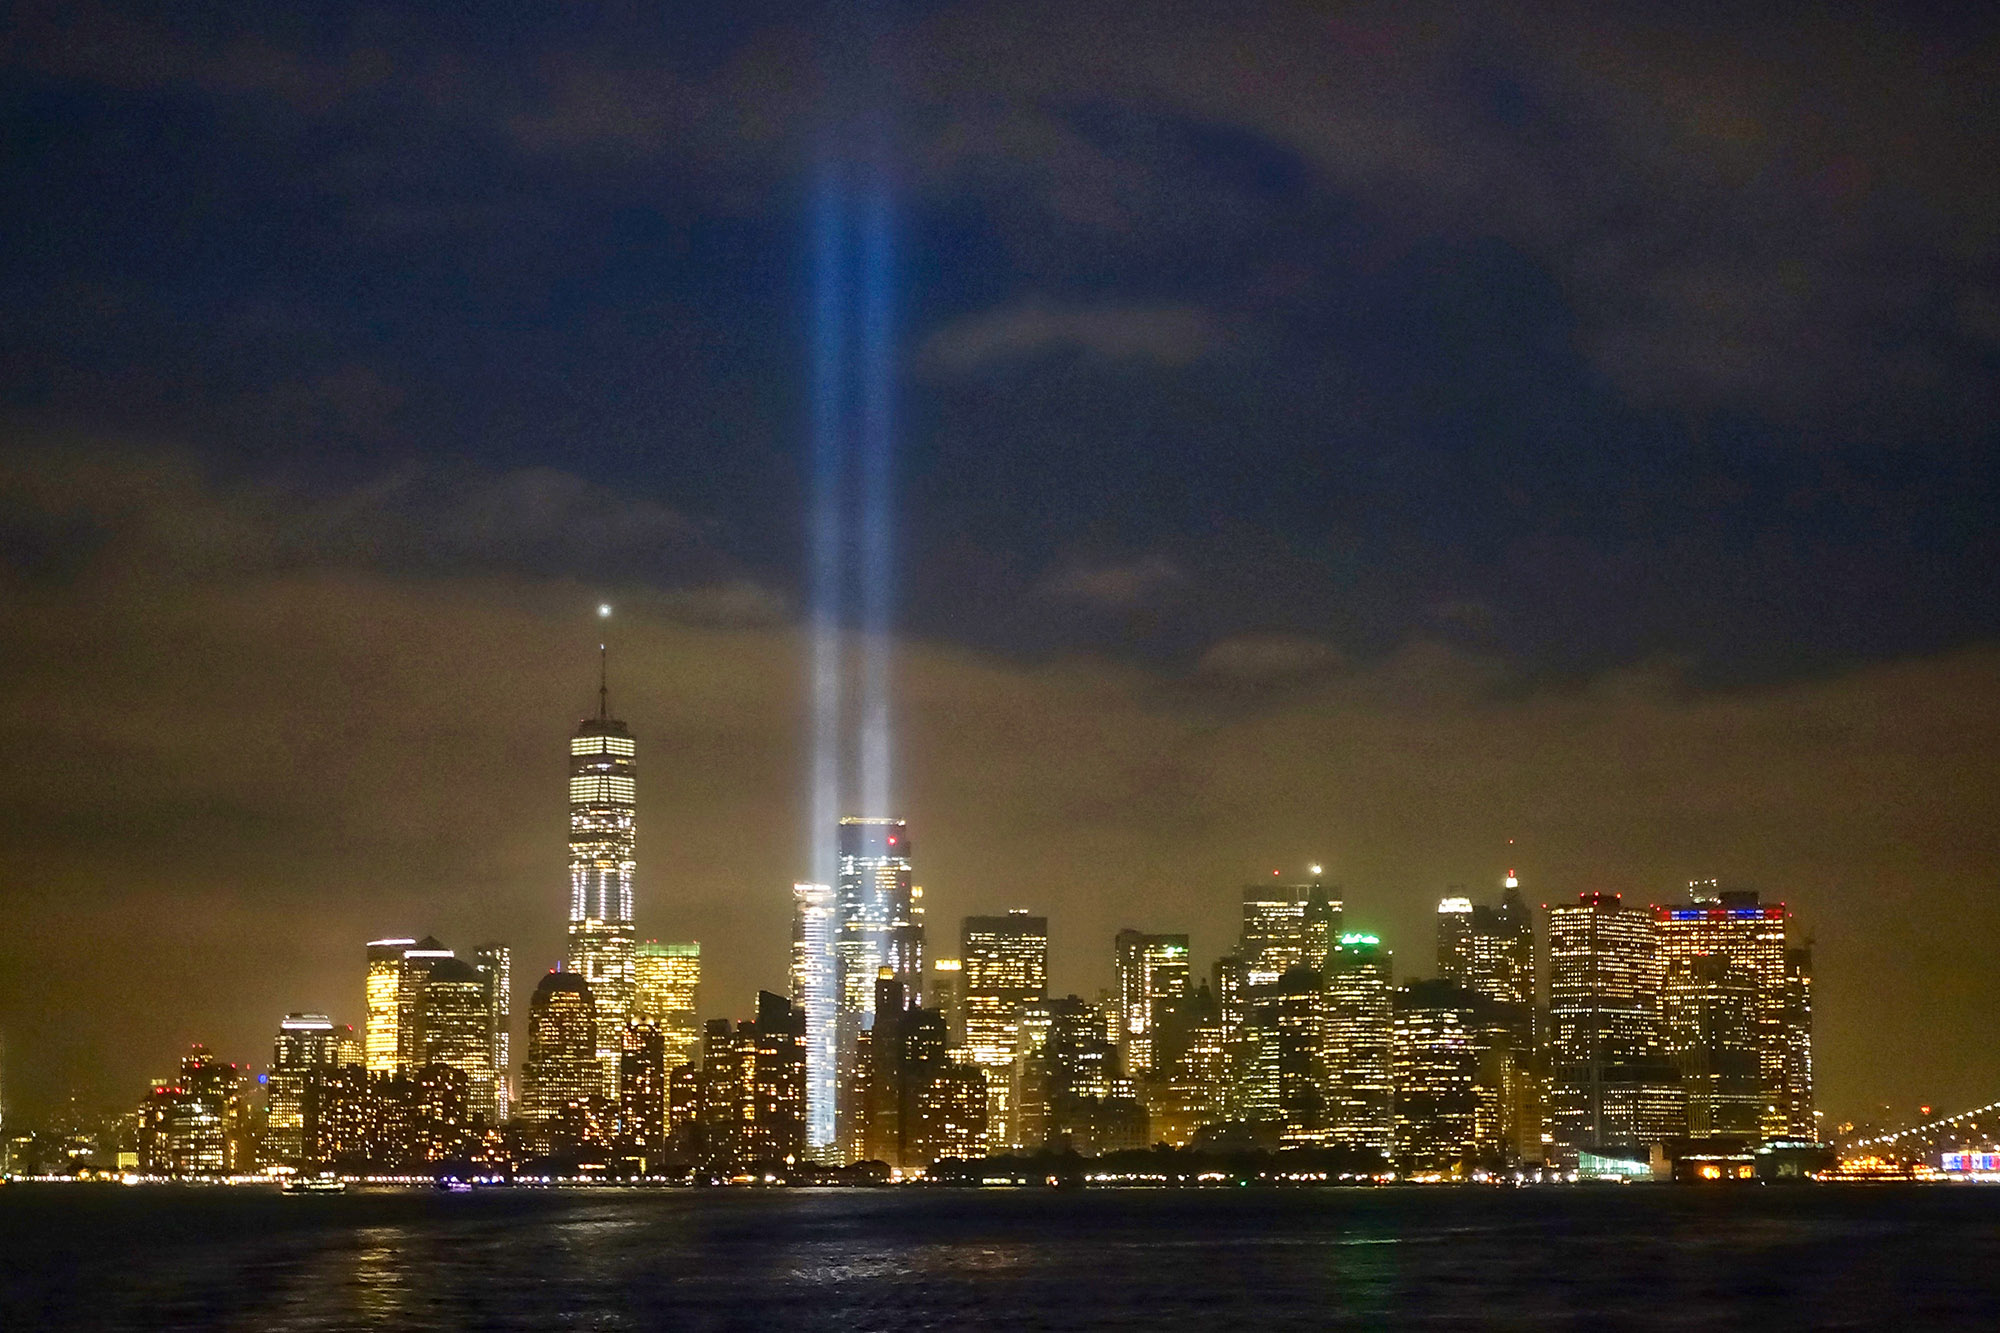 Police union to host own 9/11 tribute after cancelation